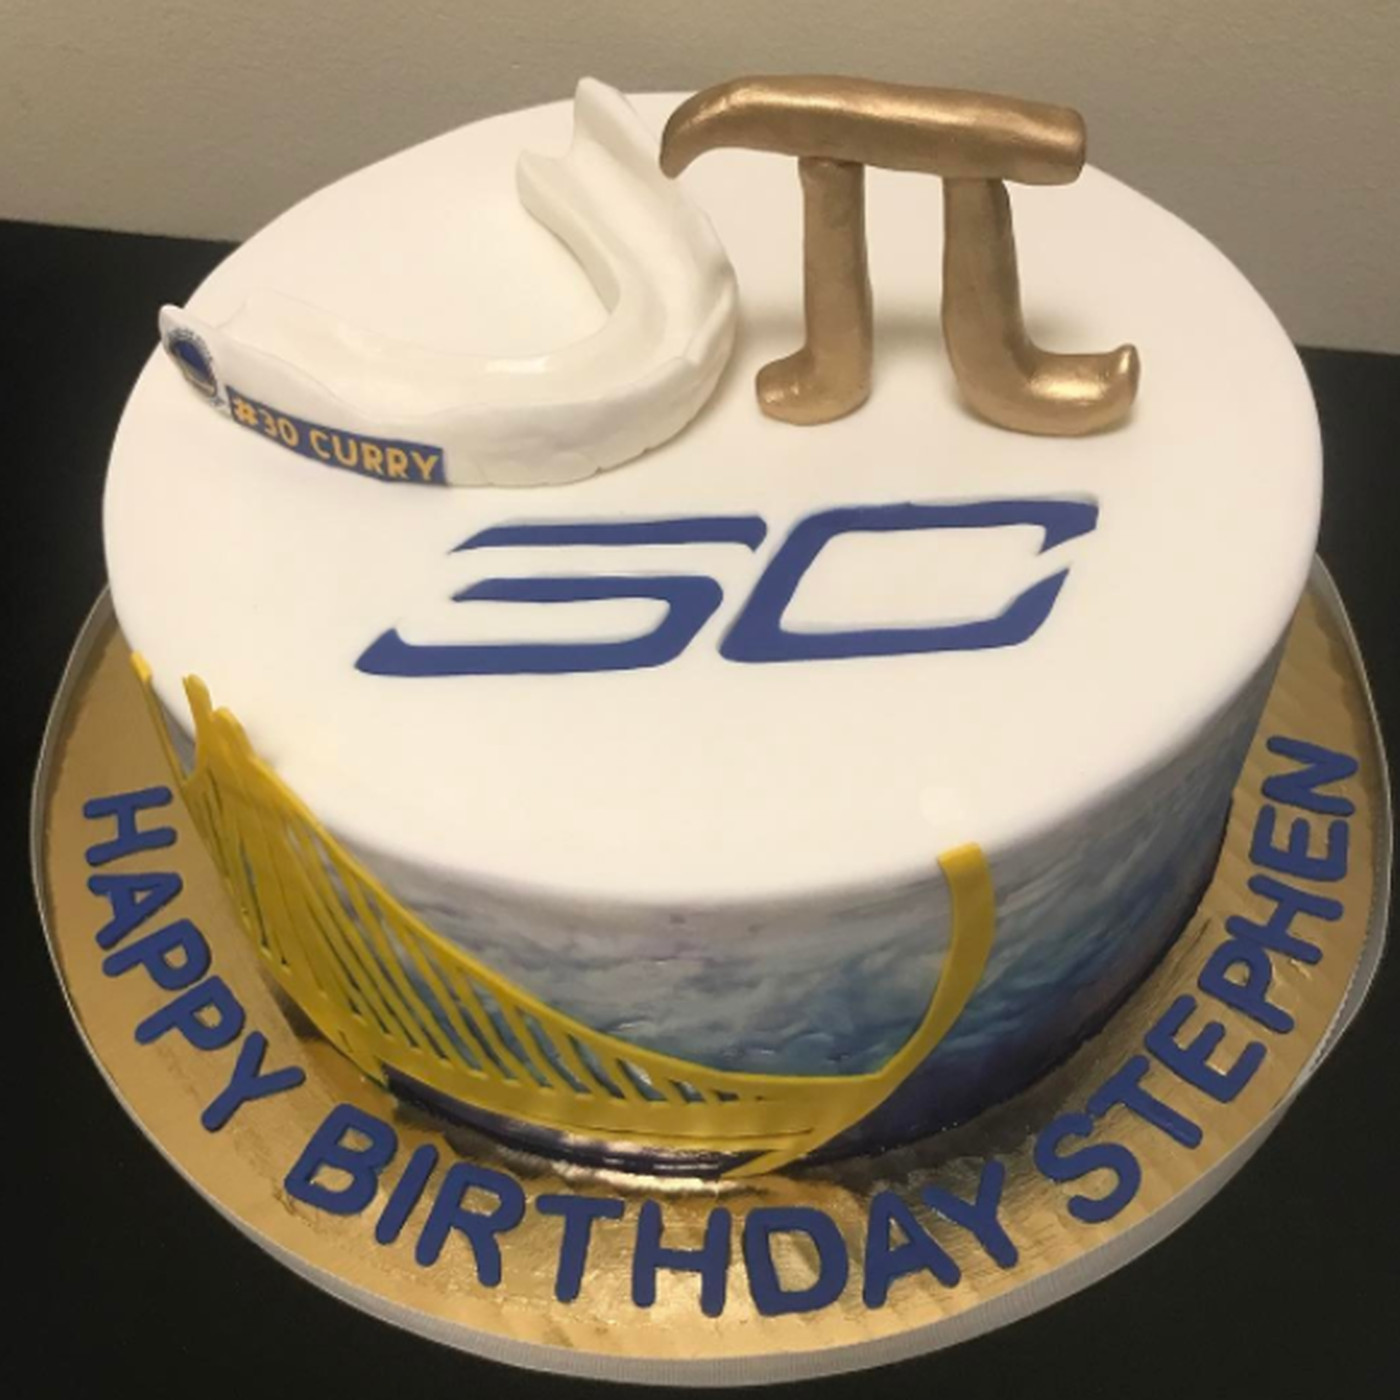 Steph Currys Birthday Cake Is The Most Steph Curry Birthday Cake